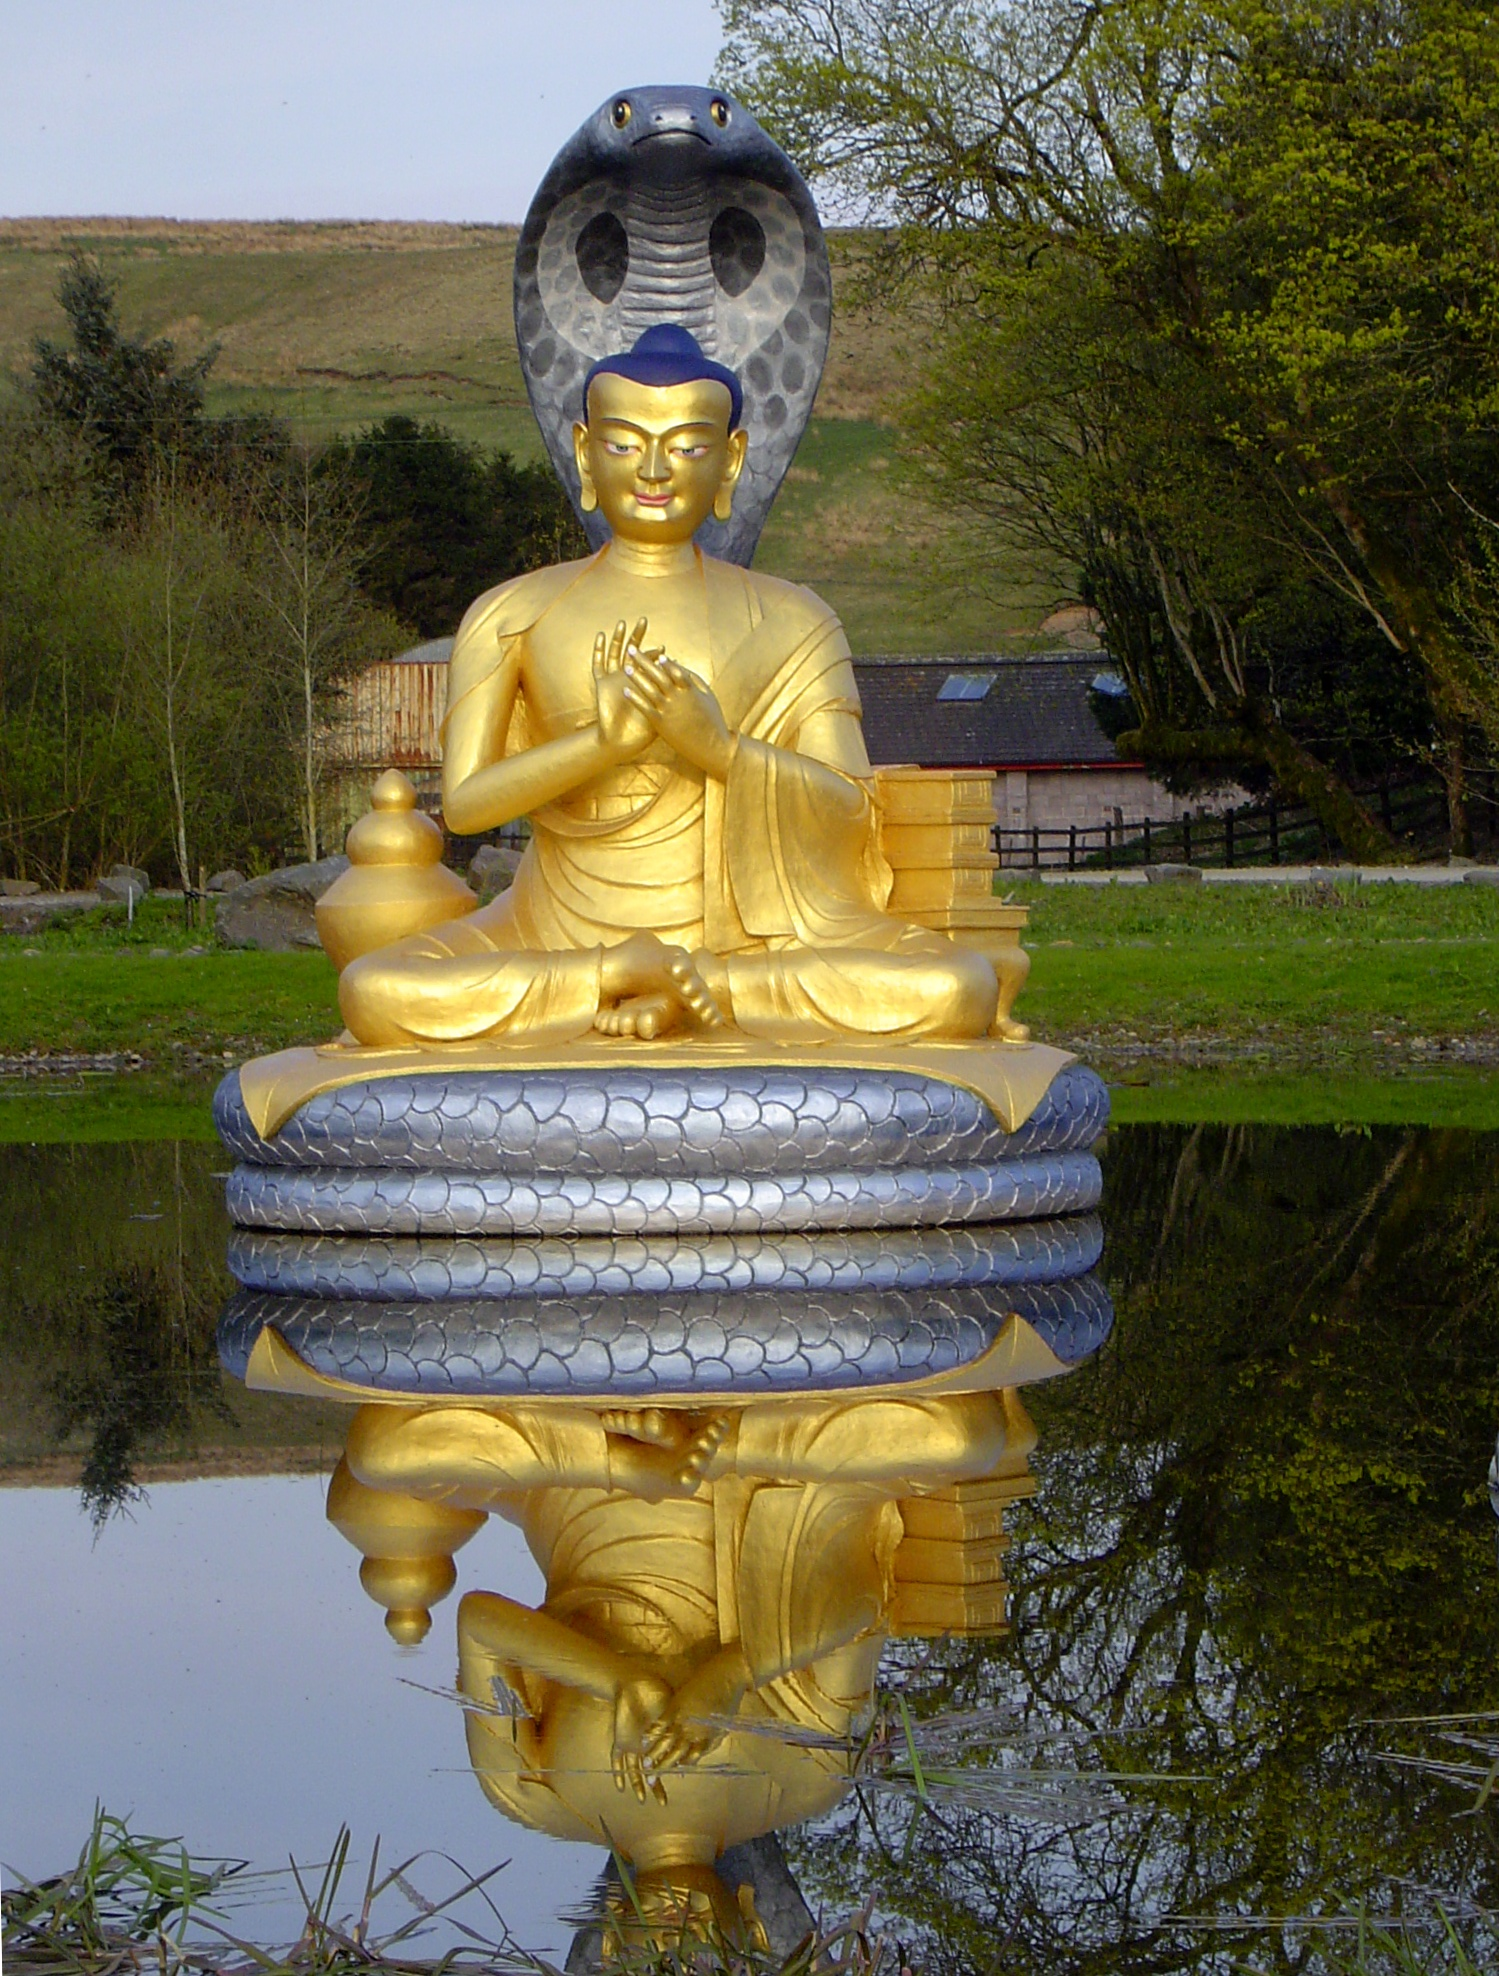 Golden statue of Nāgārjuna at [[Kagyu Samye Ling Monastery and Tibetan Centre|Kagyu Samye Ling Monastery]], [[Scotland]].